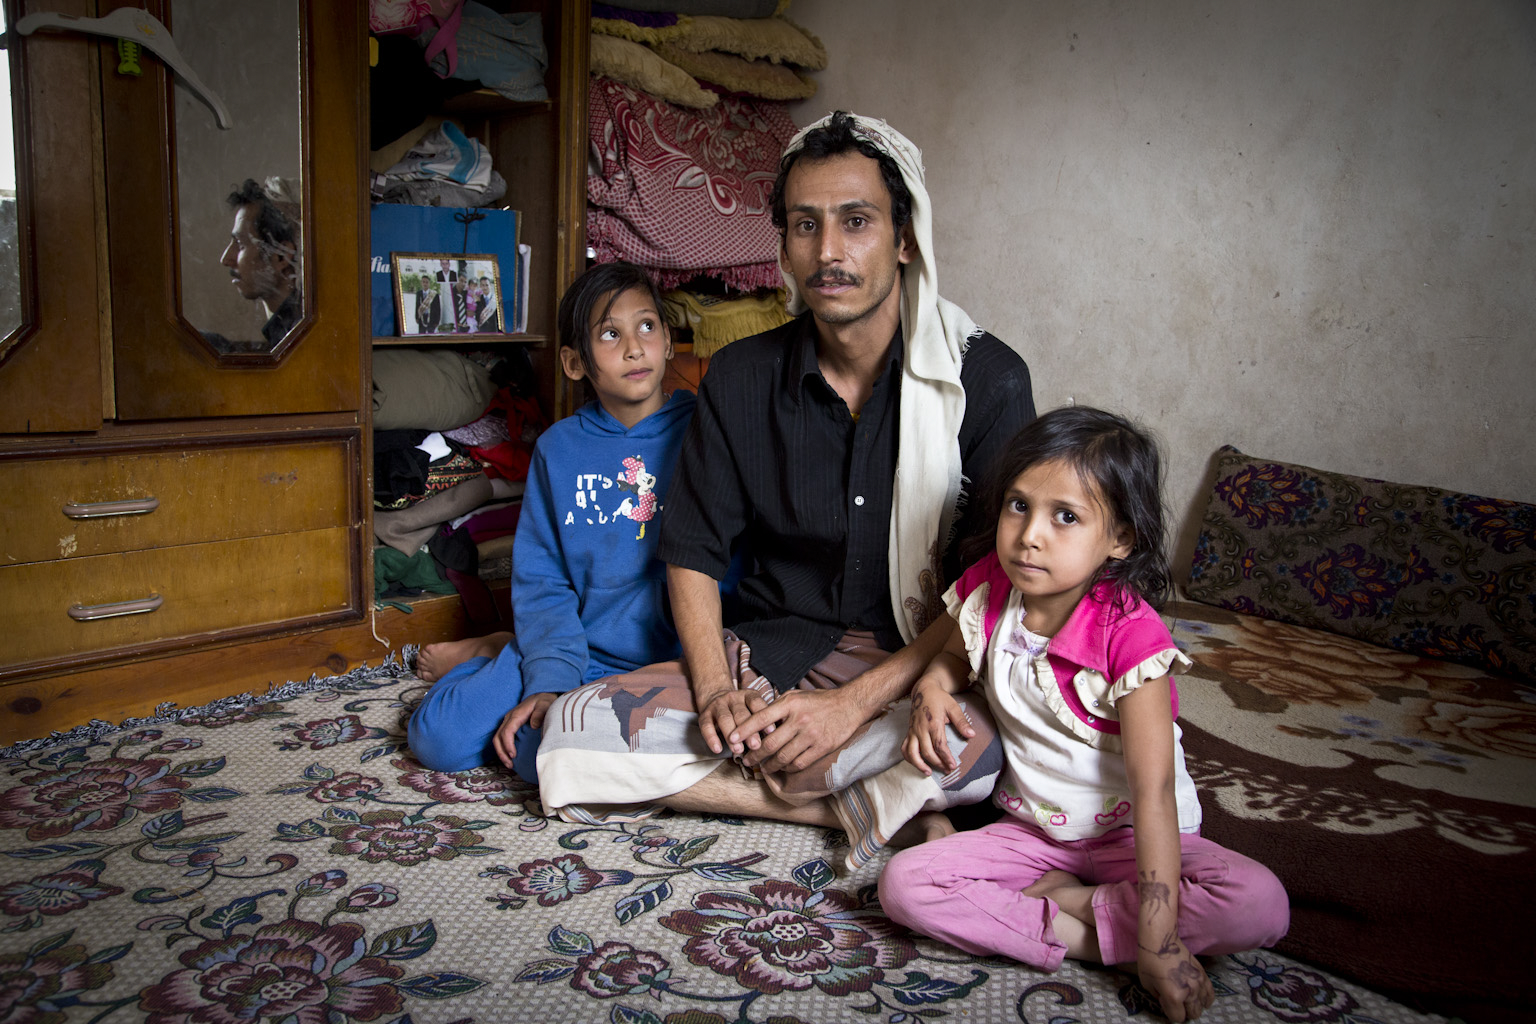 Walid sits with his two daughters on the floor, one daughter looks up at him